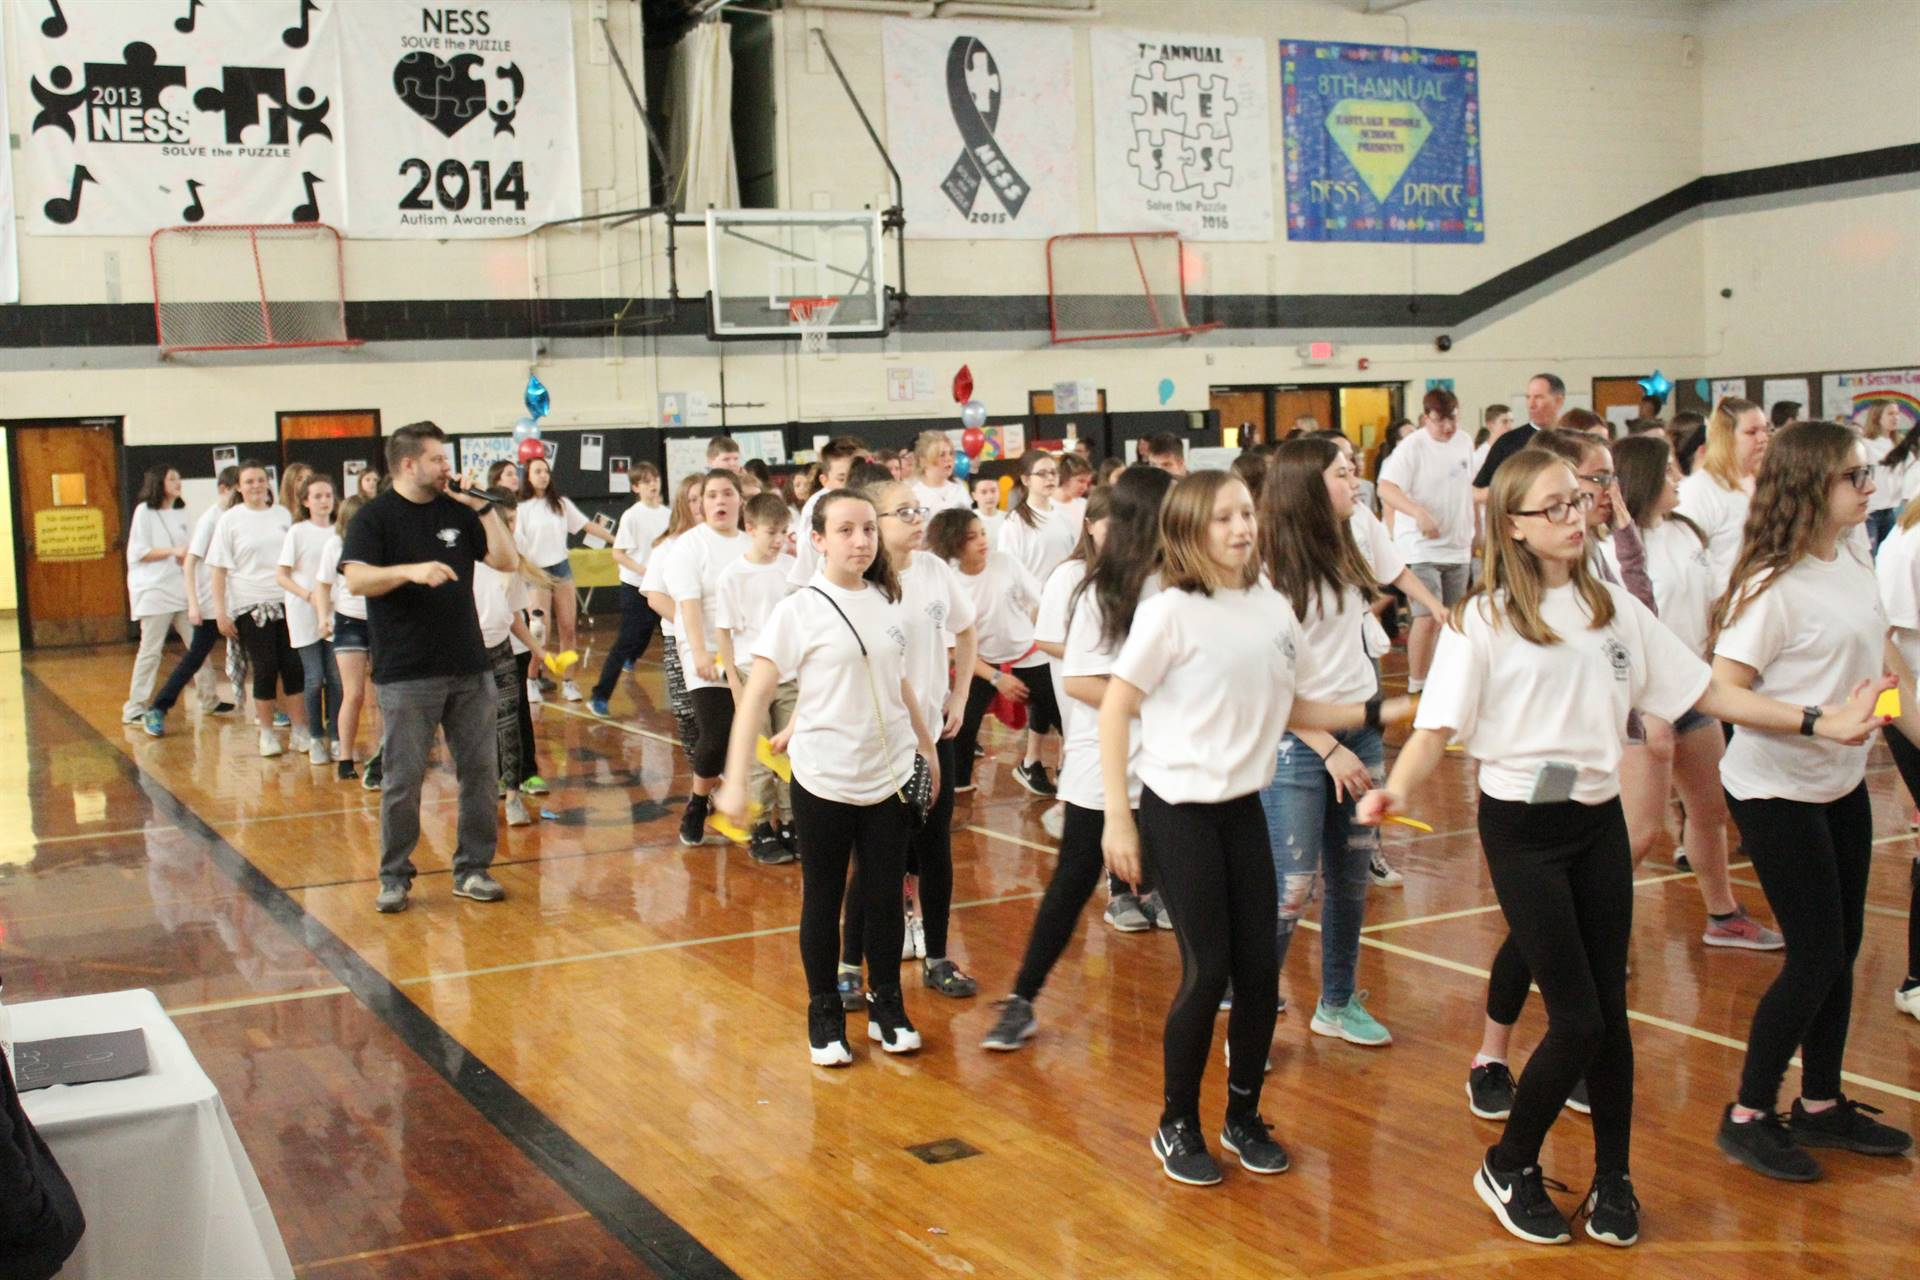 Mr. Hagan Leading the NESS Dancers in the 2018 Line Dance